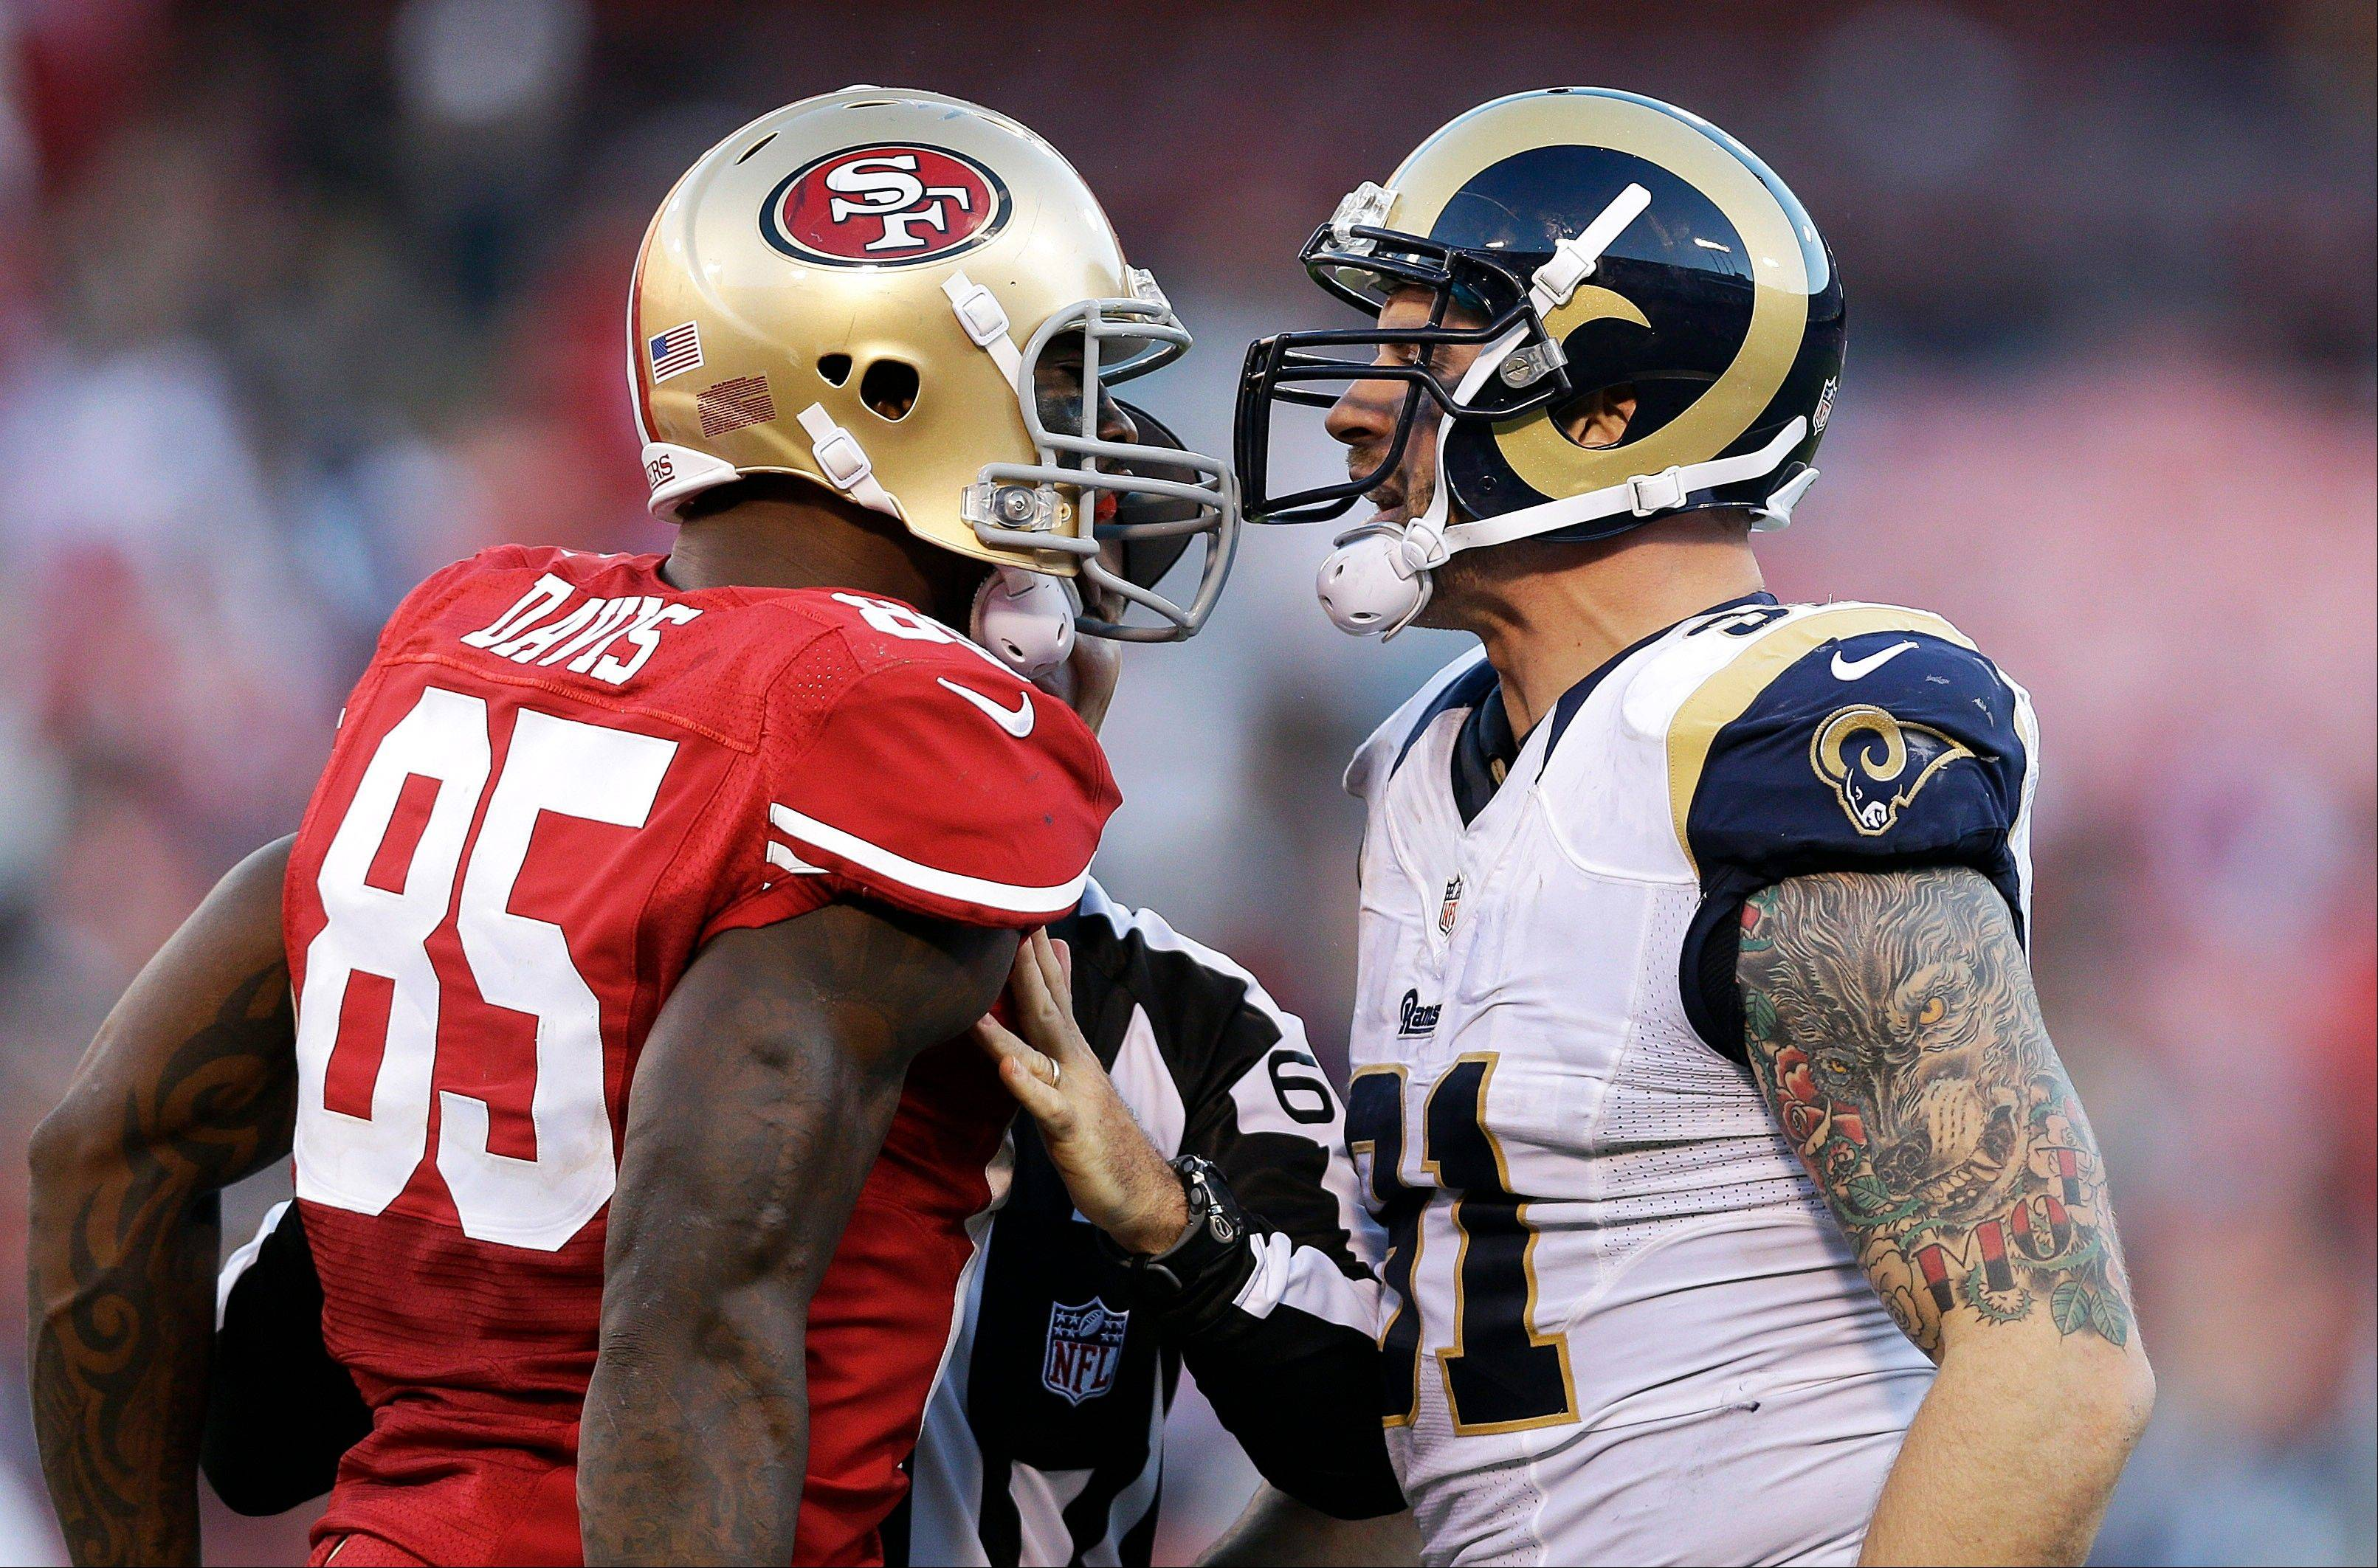 San Francisco 49ers tight end Vernon Davis (85) faces off with St. Louis Rams defensive end Chris Long during the fourth quarter in San Francisco.